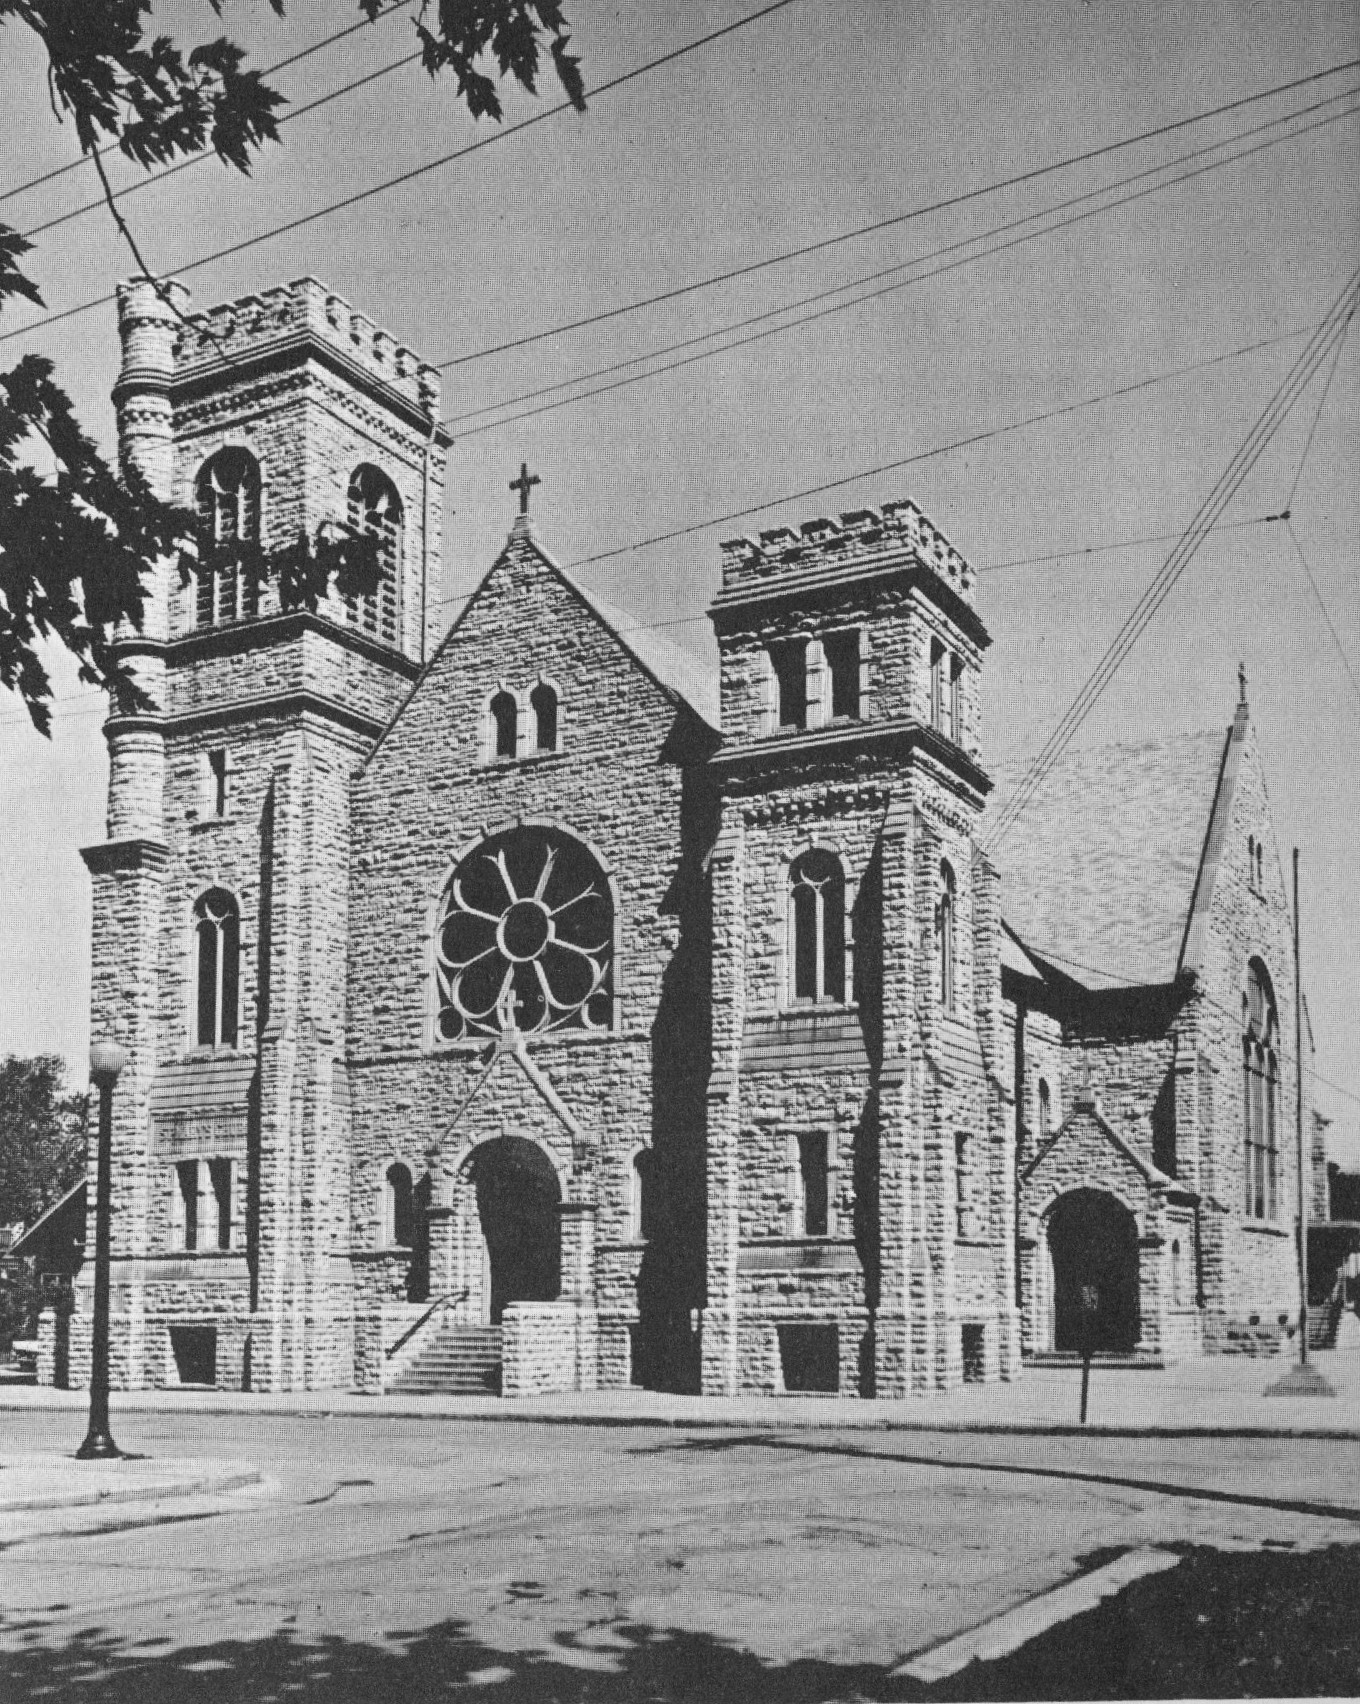 St. Mary's Church built in 1901.